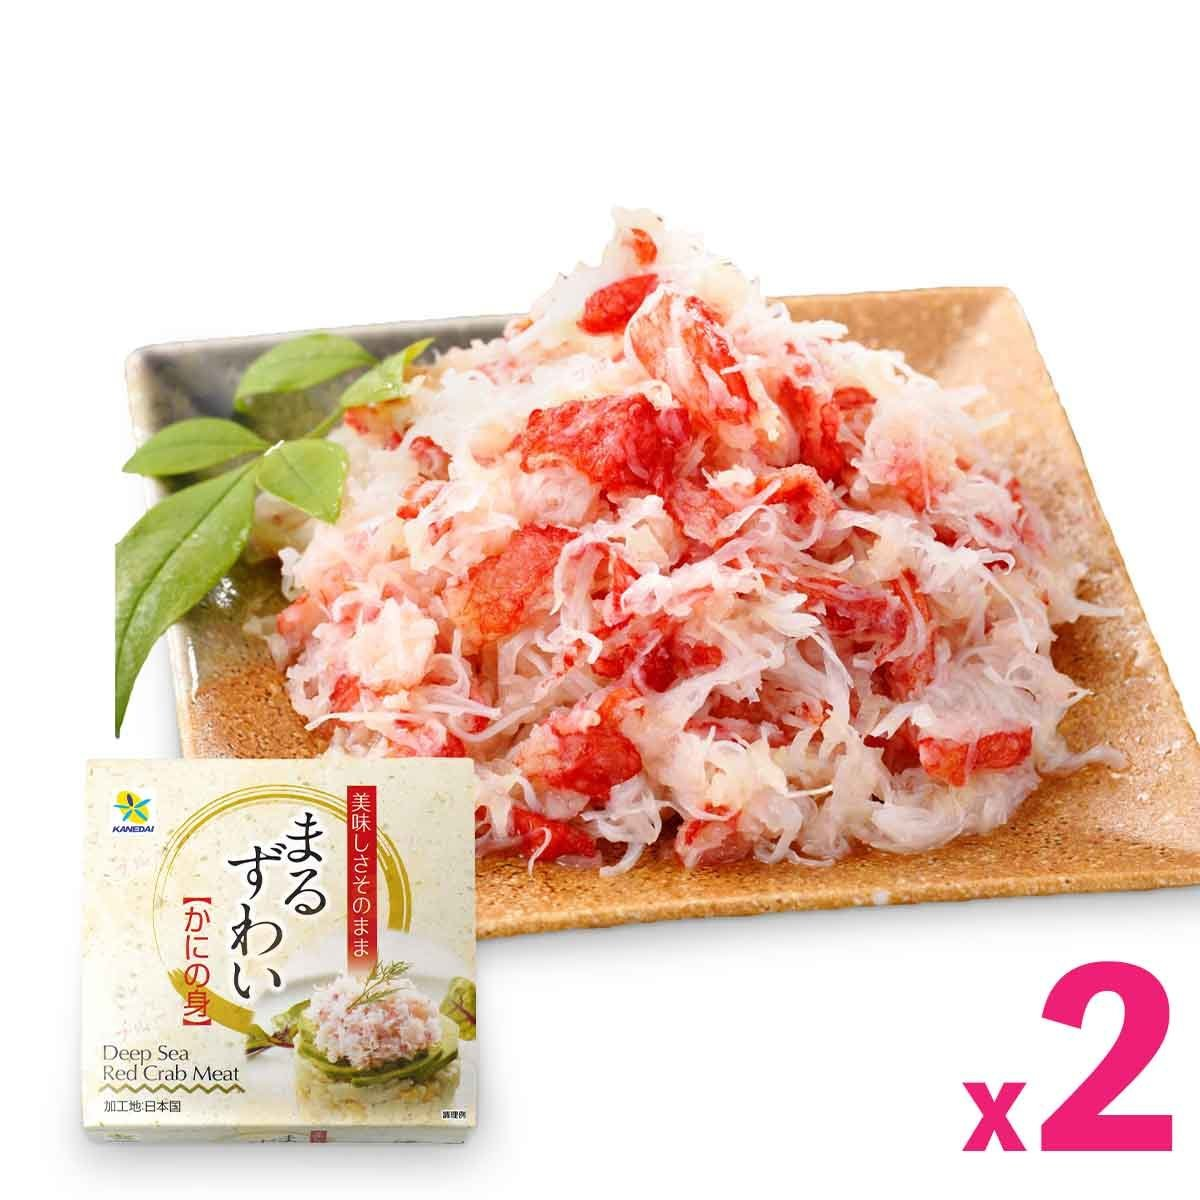 Kanedai Deep Sea Red Crab Meat (50g) x 2cans